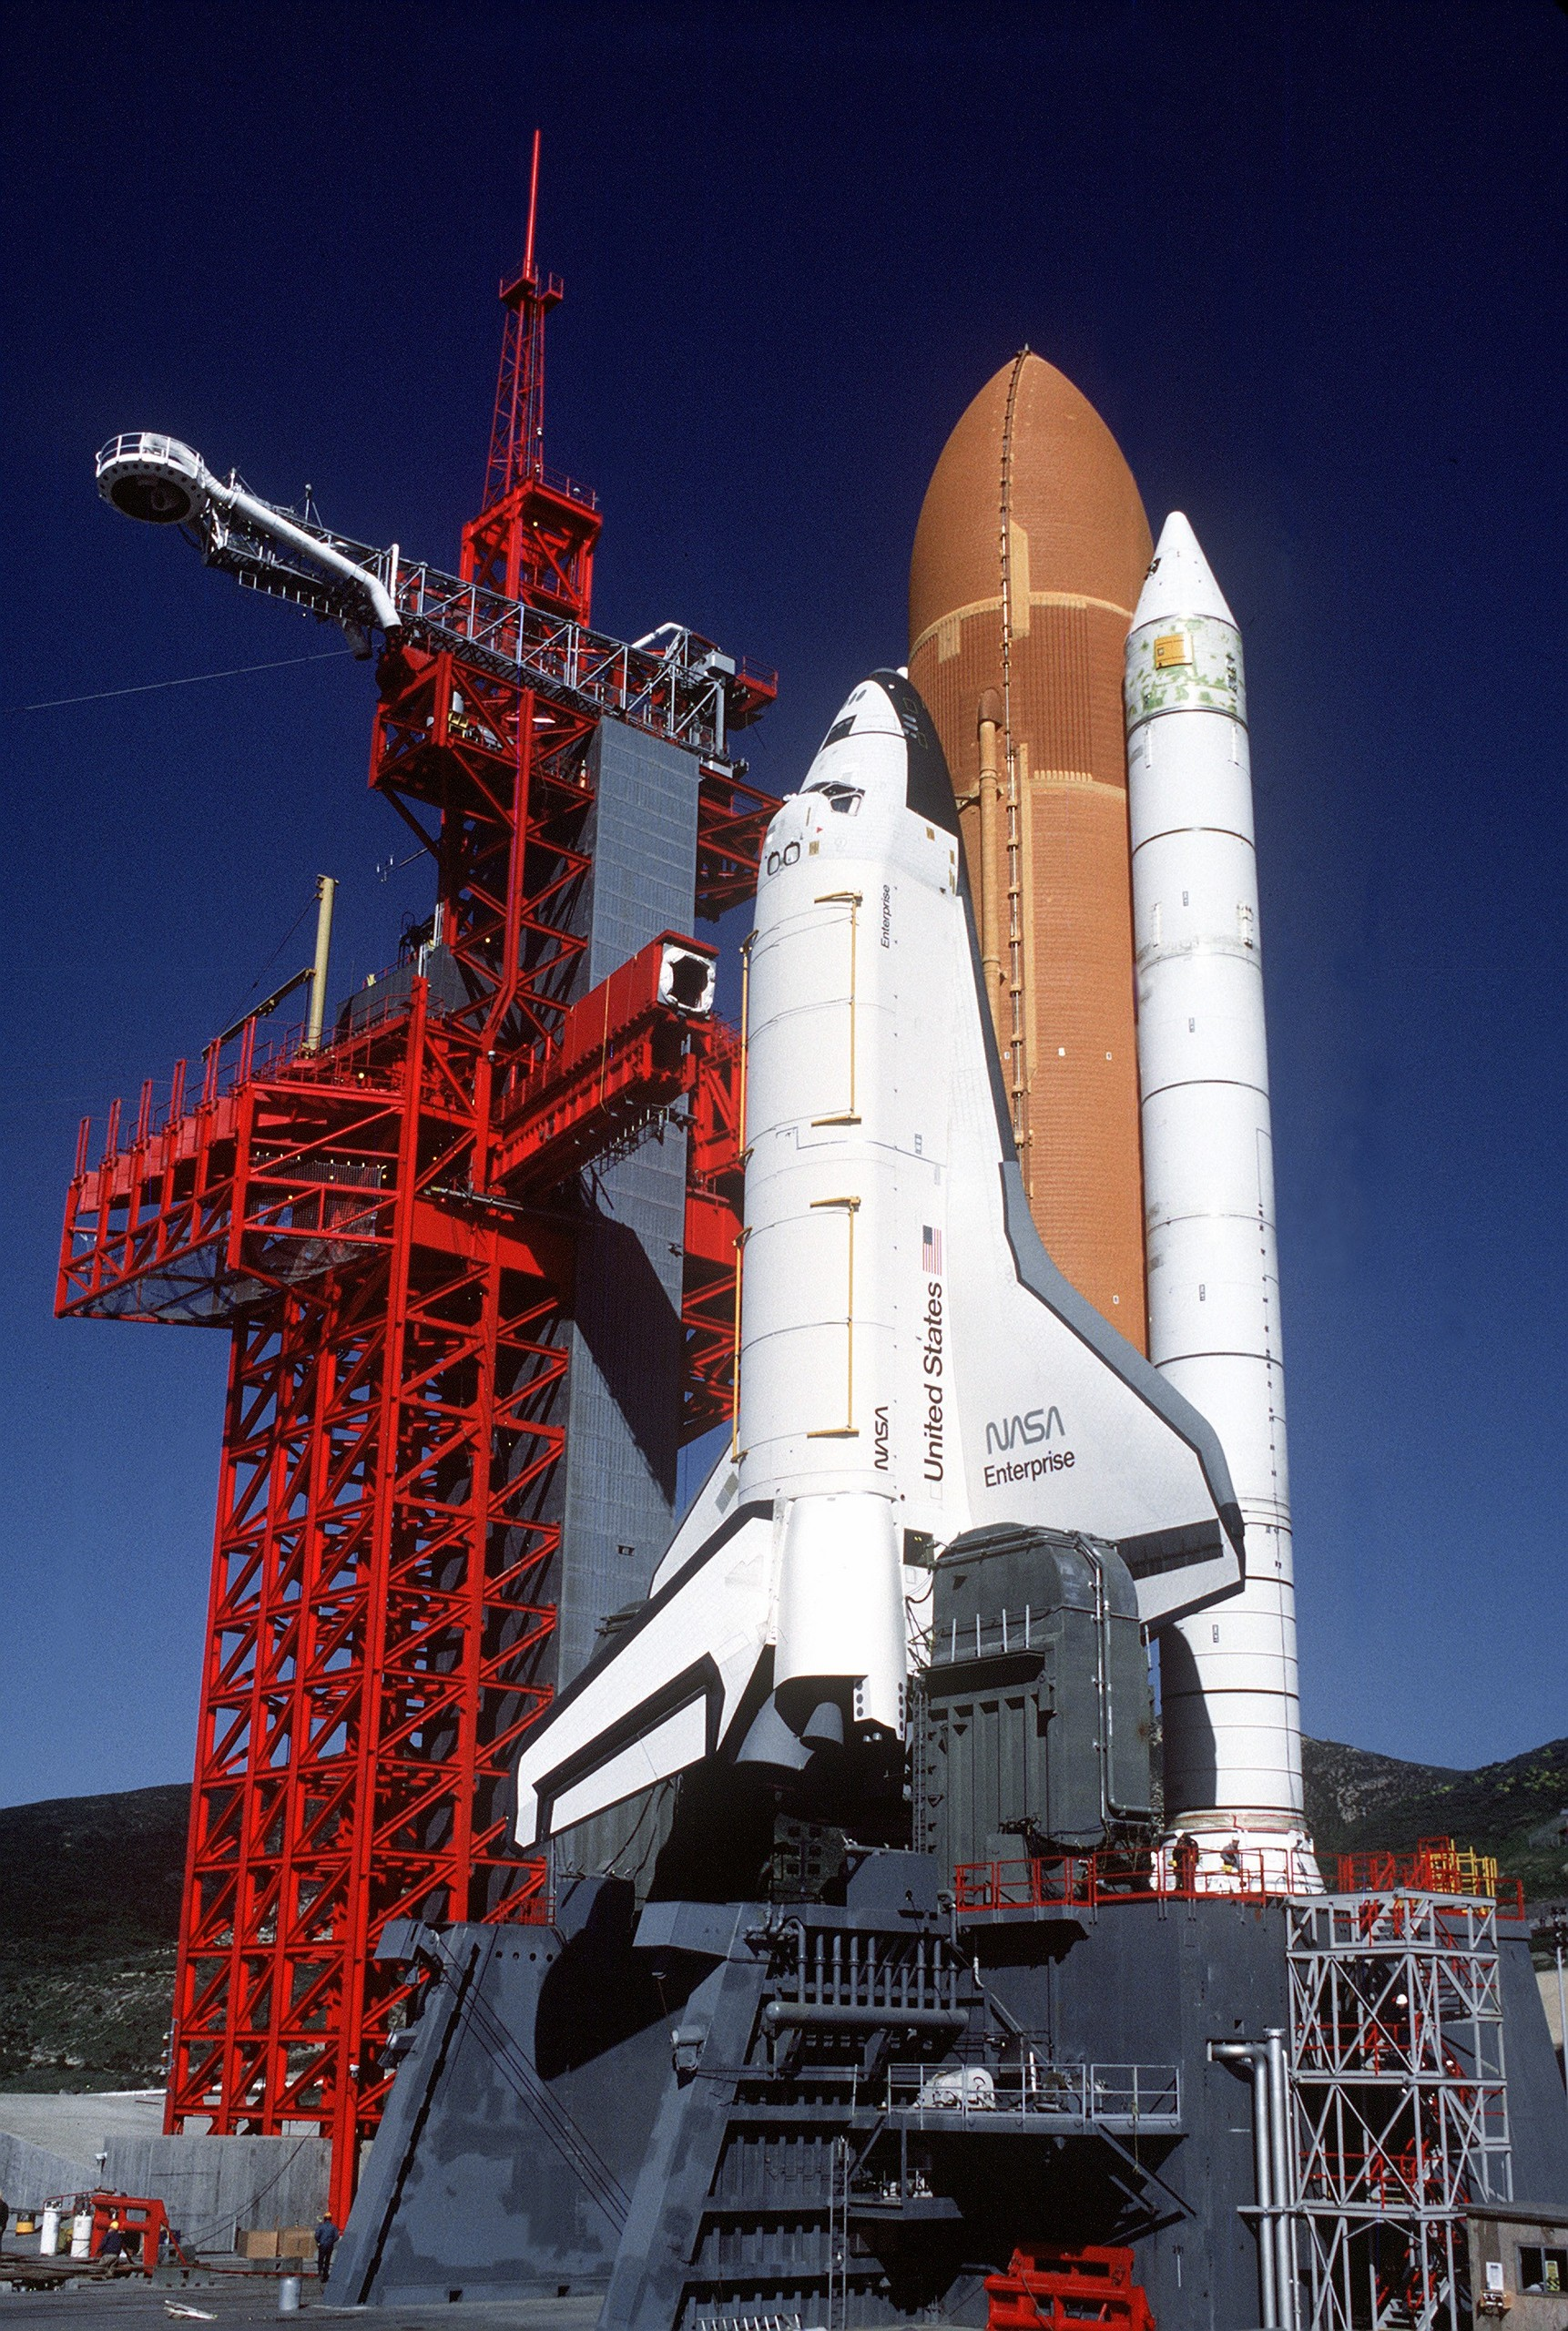 nasa space shuttle project - photo #14